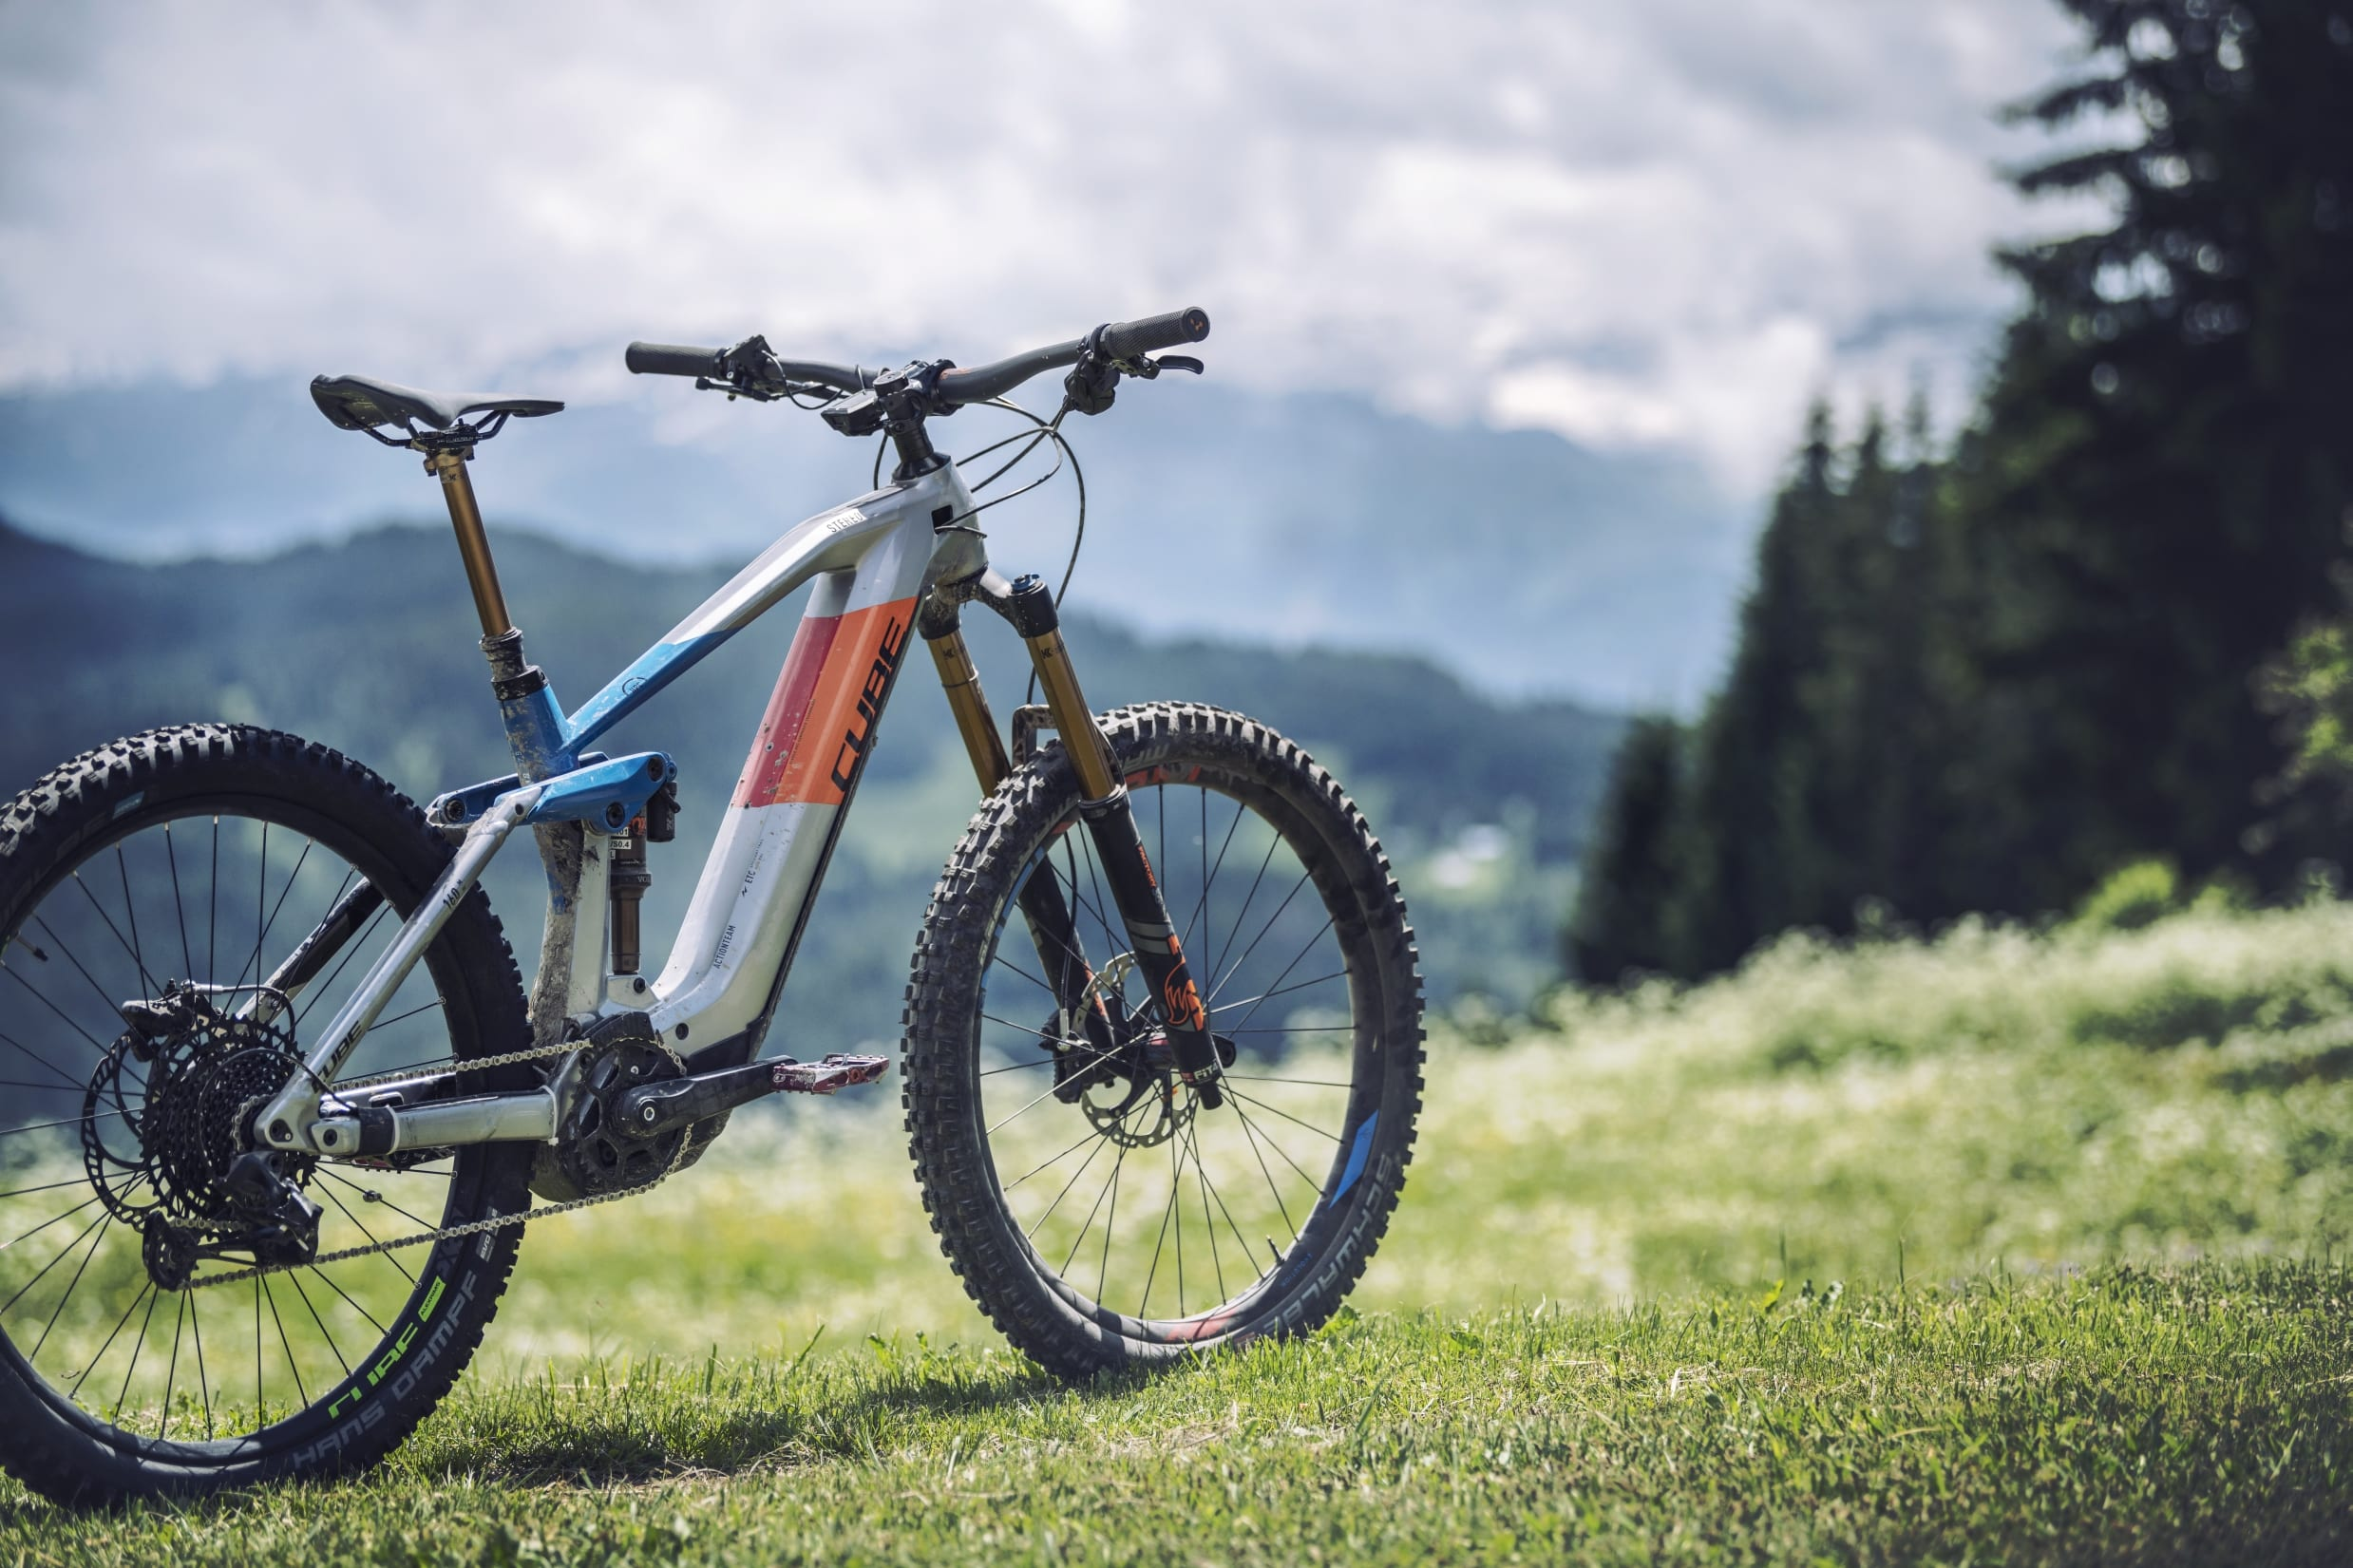 Cube Stereo Hybrid 160 HPC SL 2020 bike with a wooded background